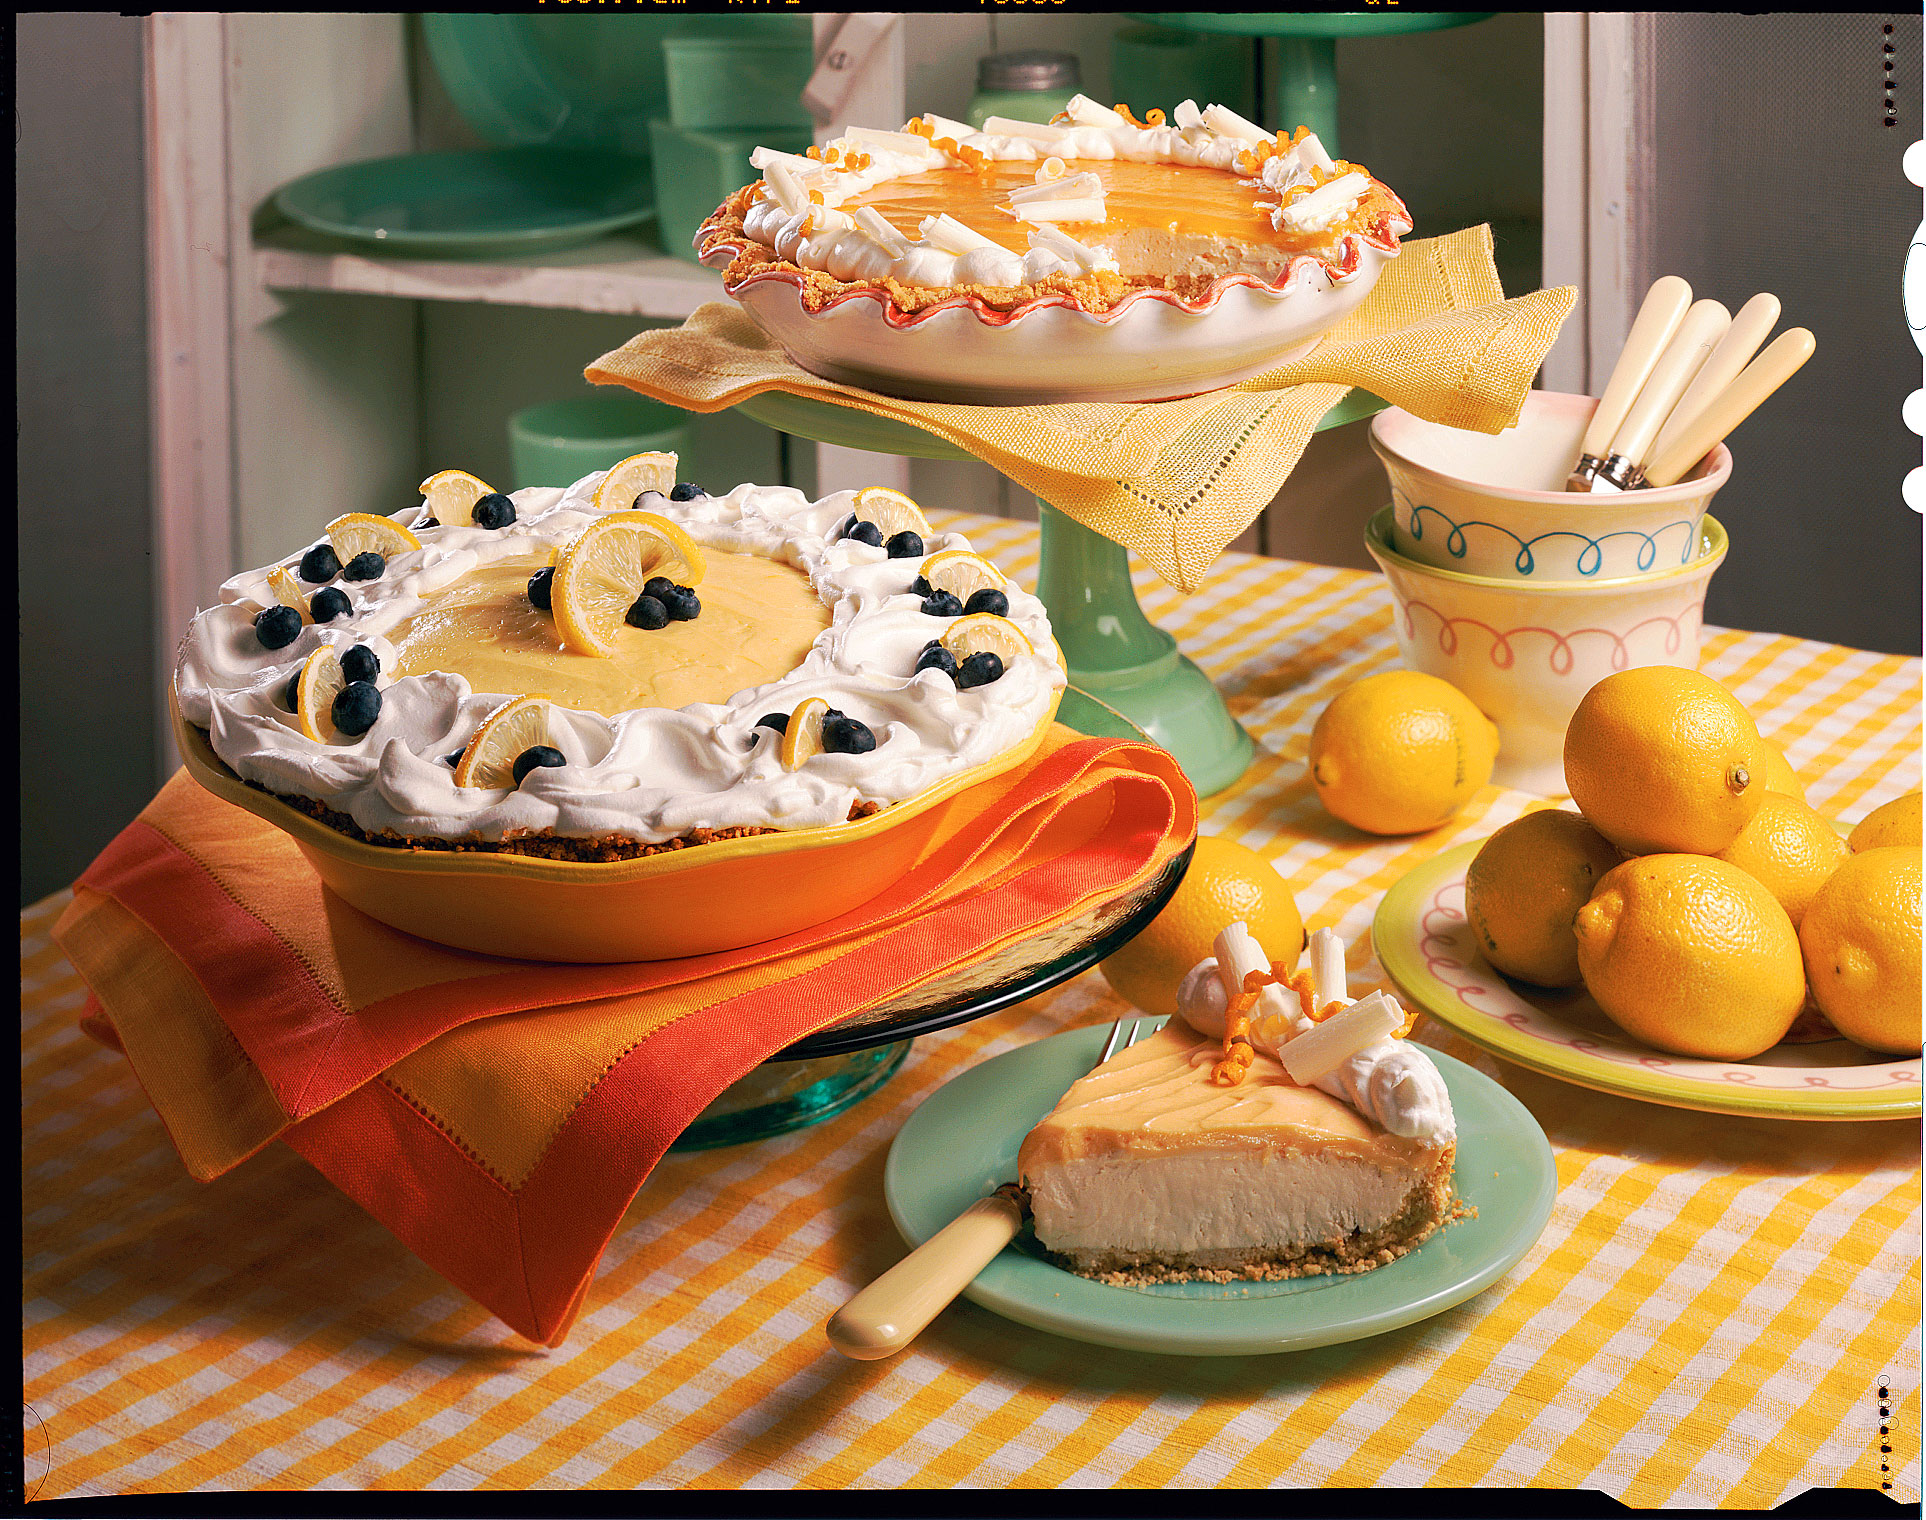 Father's Day Recipe Ideas: Lemon-Blueberry Cream Pie